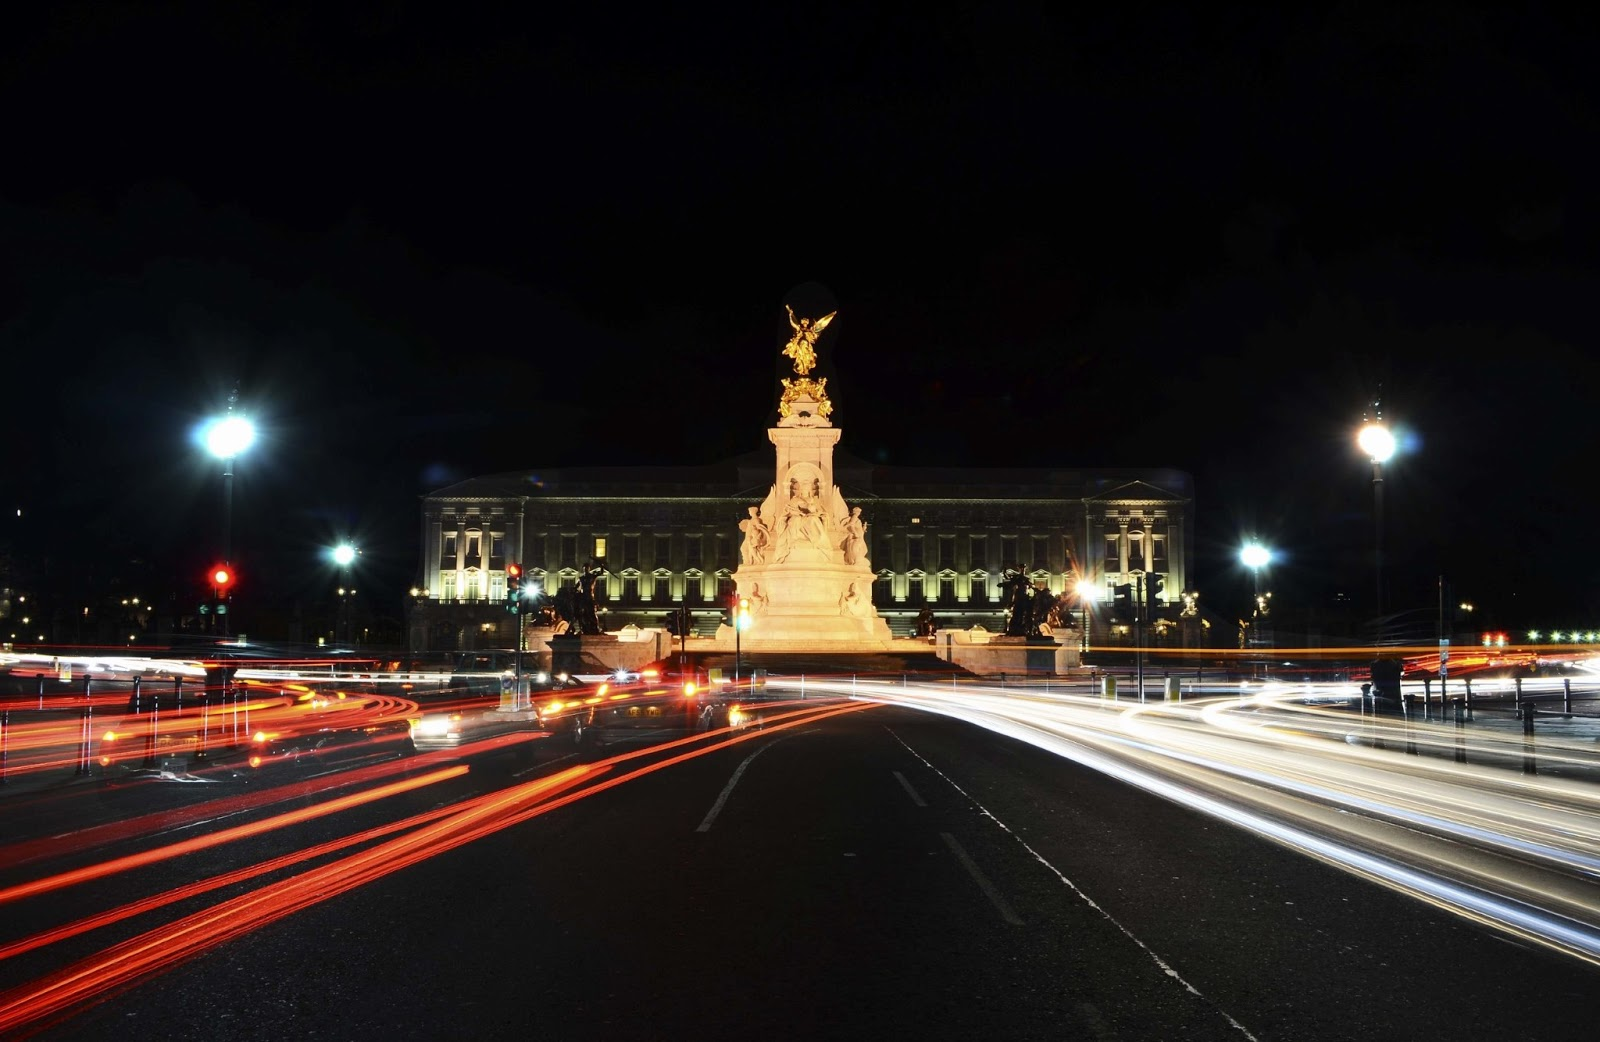 Buckingham Palace night view